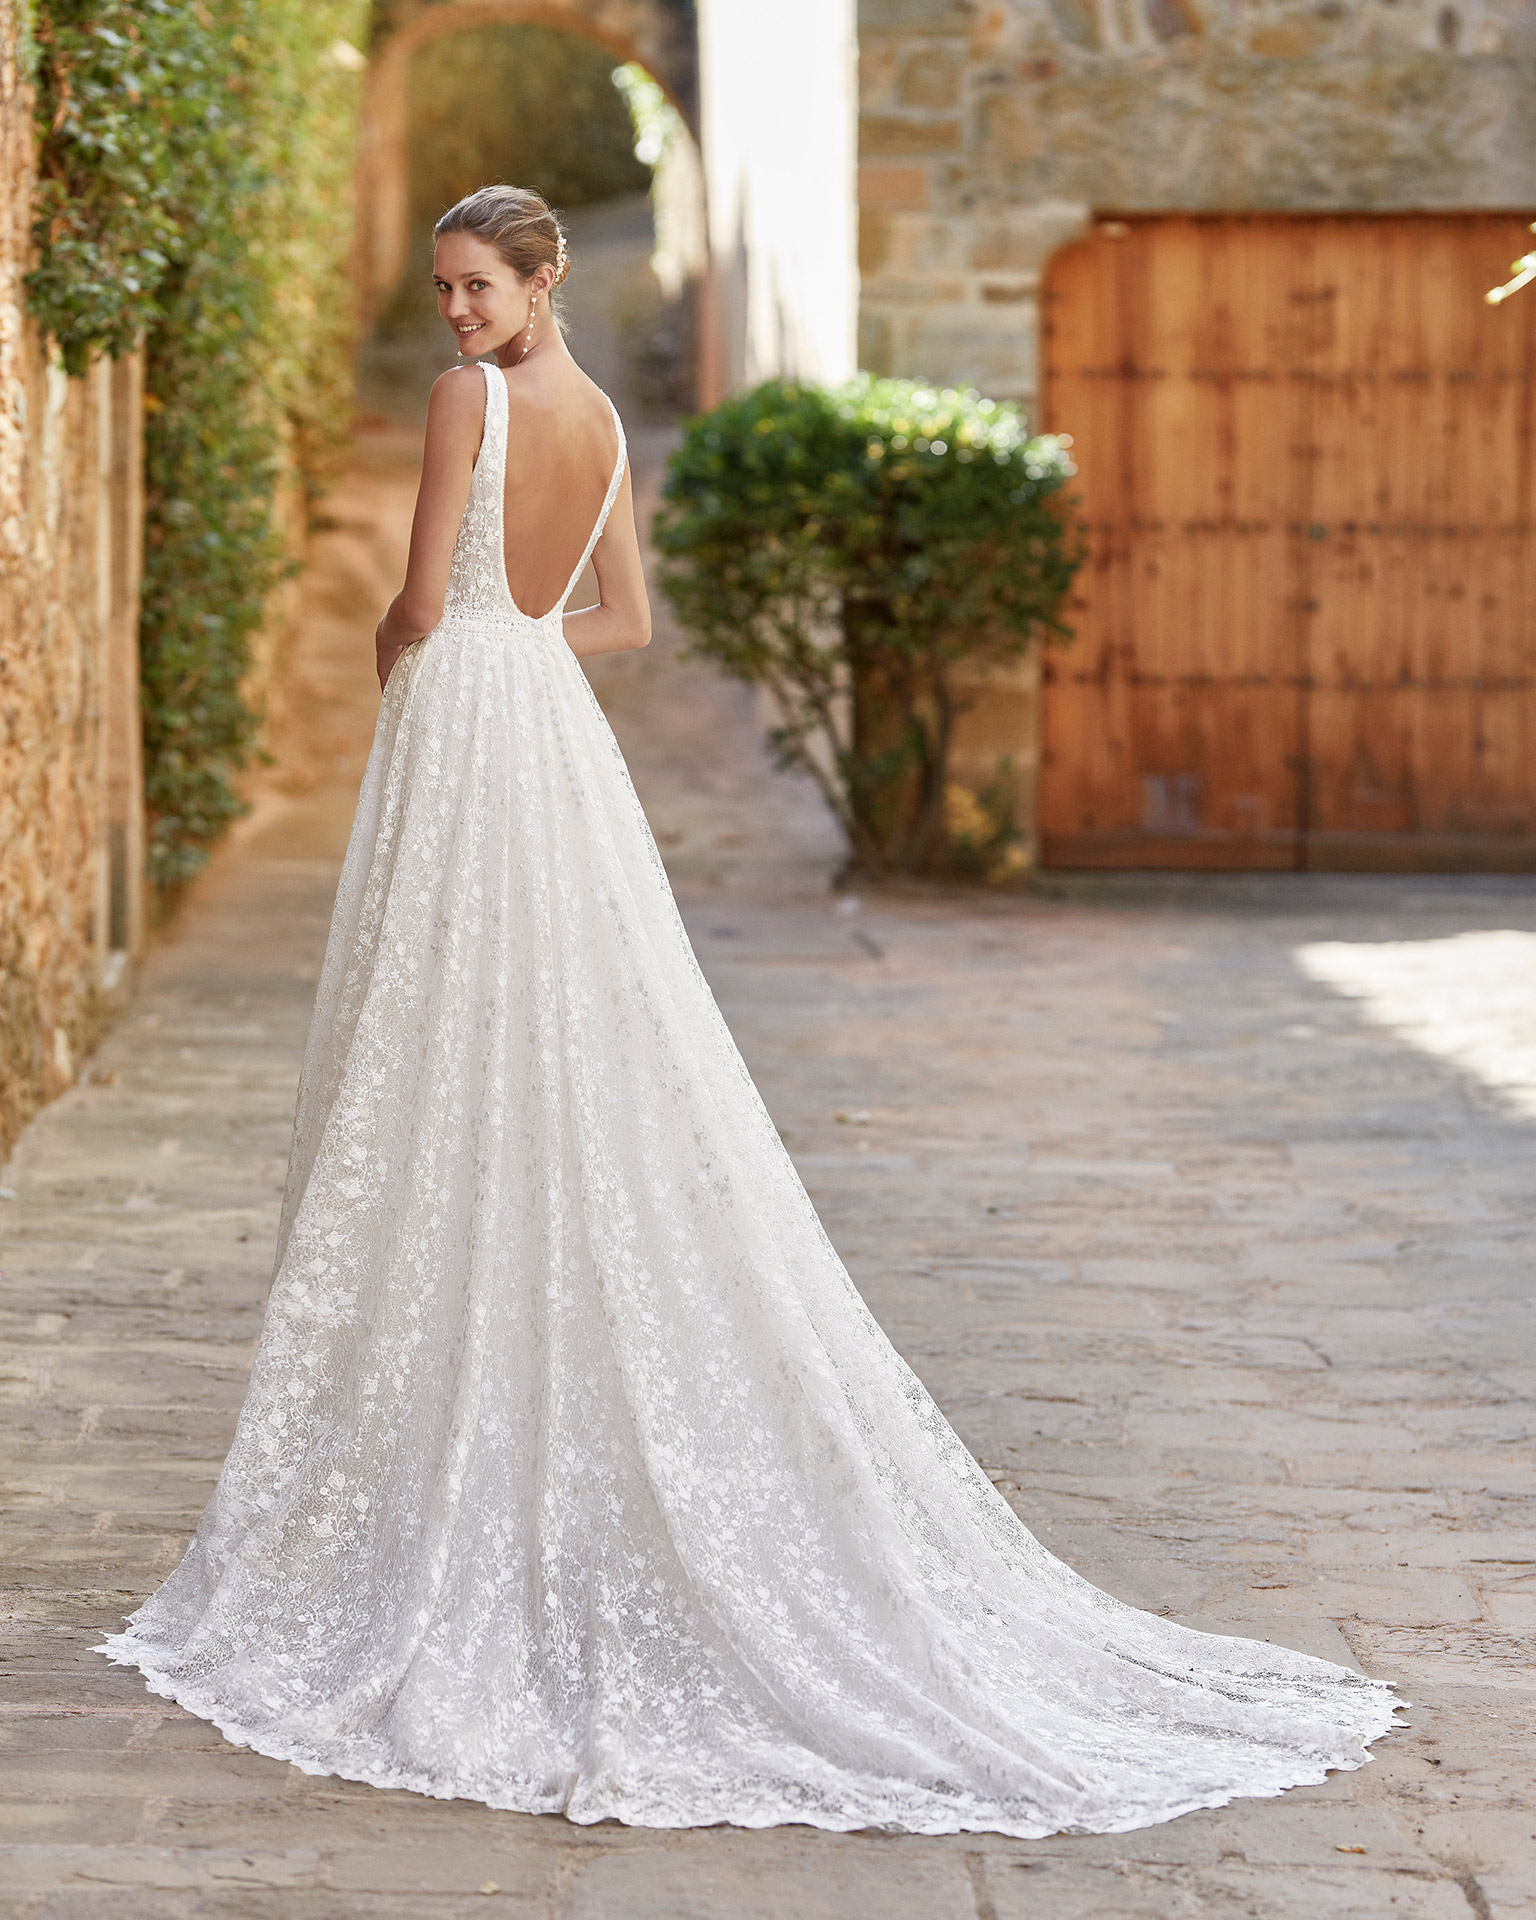 Romantic ballgown-style wedding dress; with a V-neckline, open back, beadwork details at the neckline and sleeves. Unique Alma Novia model in lace. 2022 ALMANOVIA Collection.